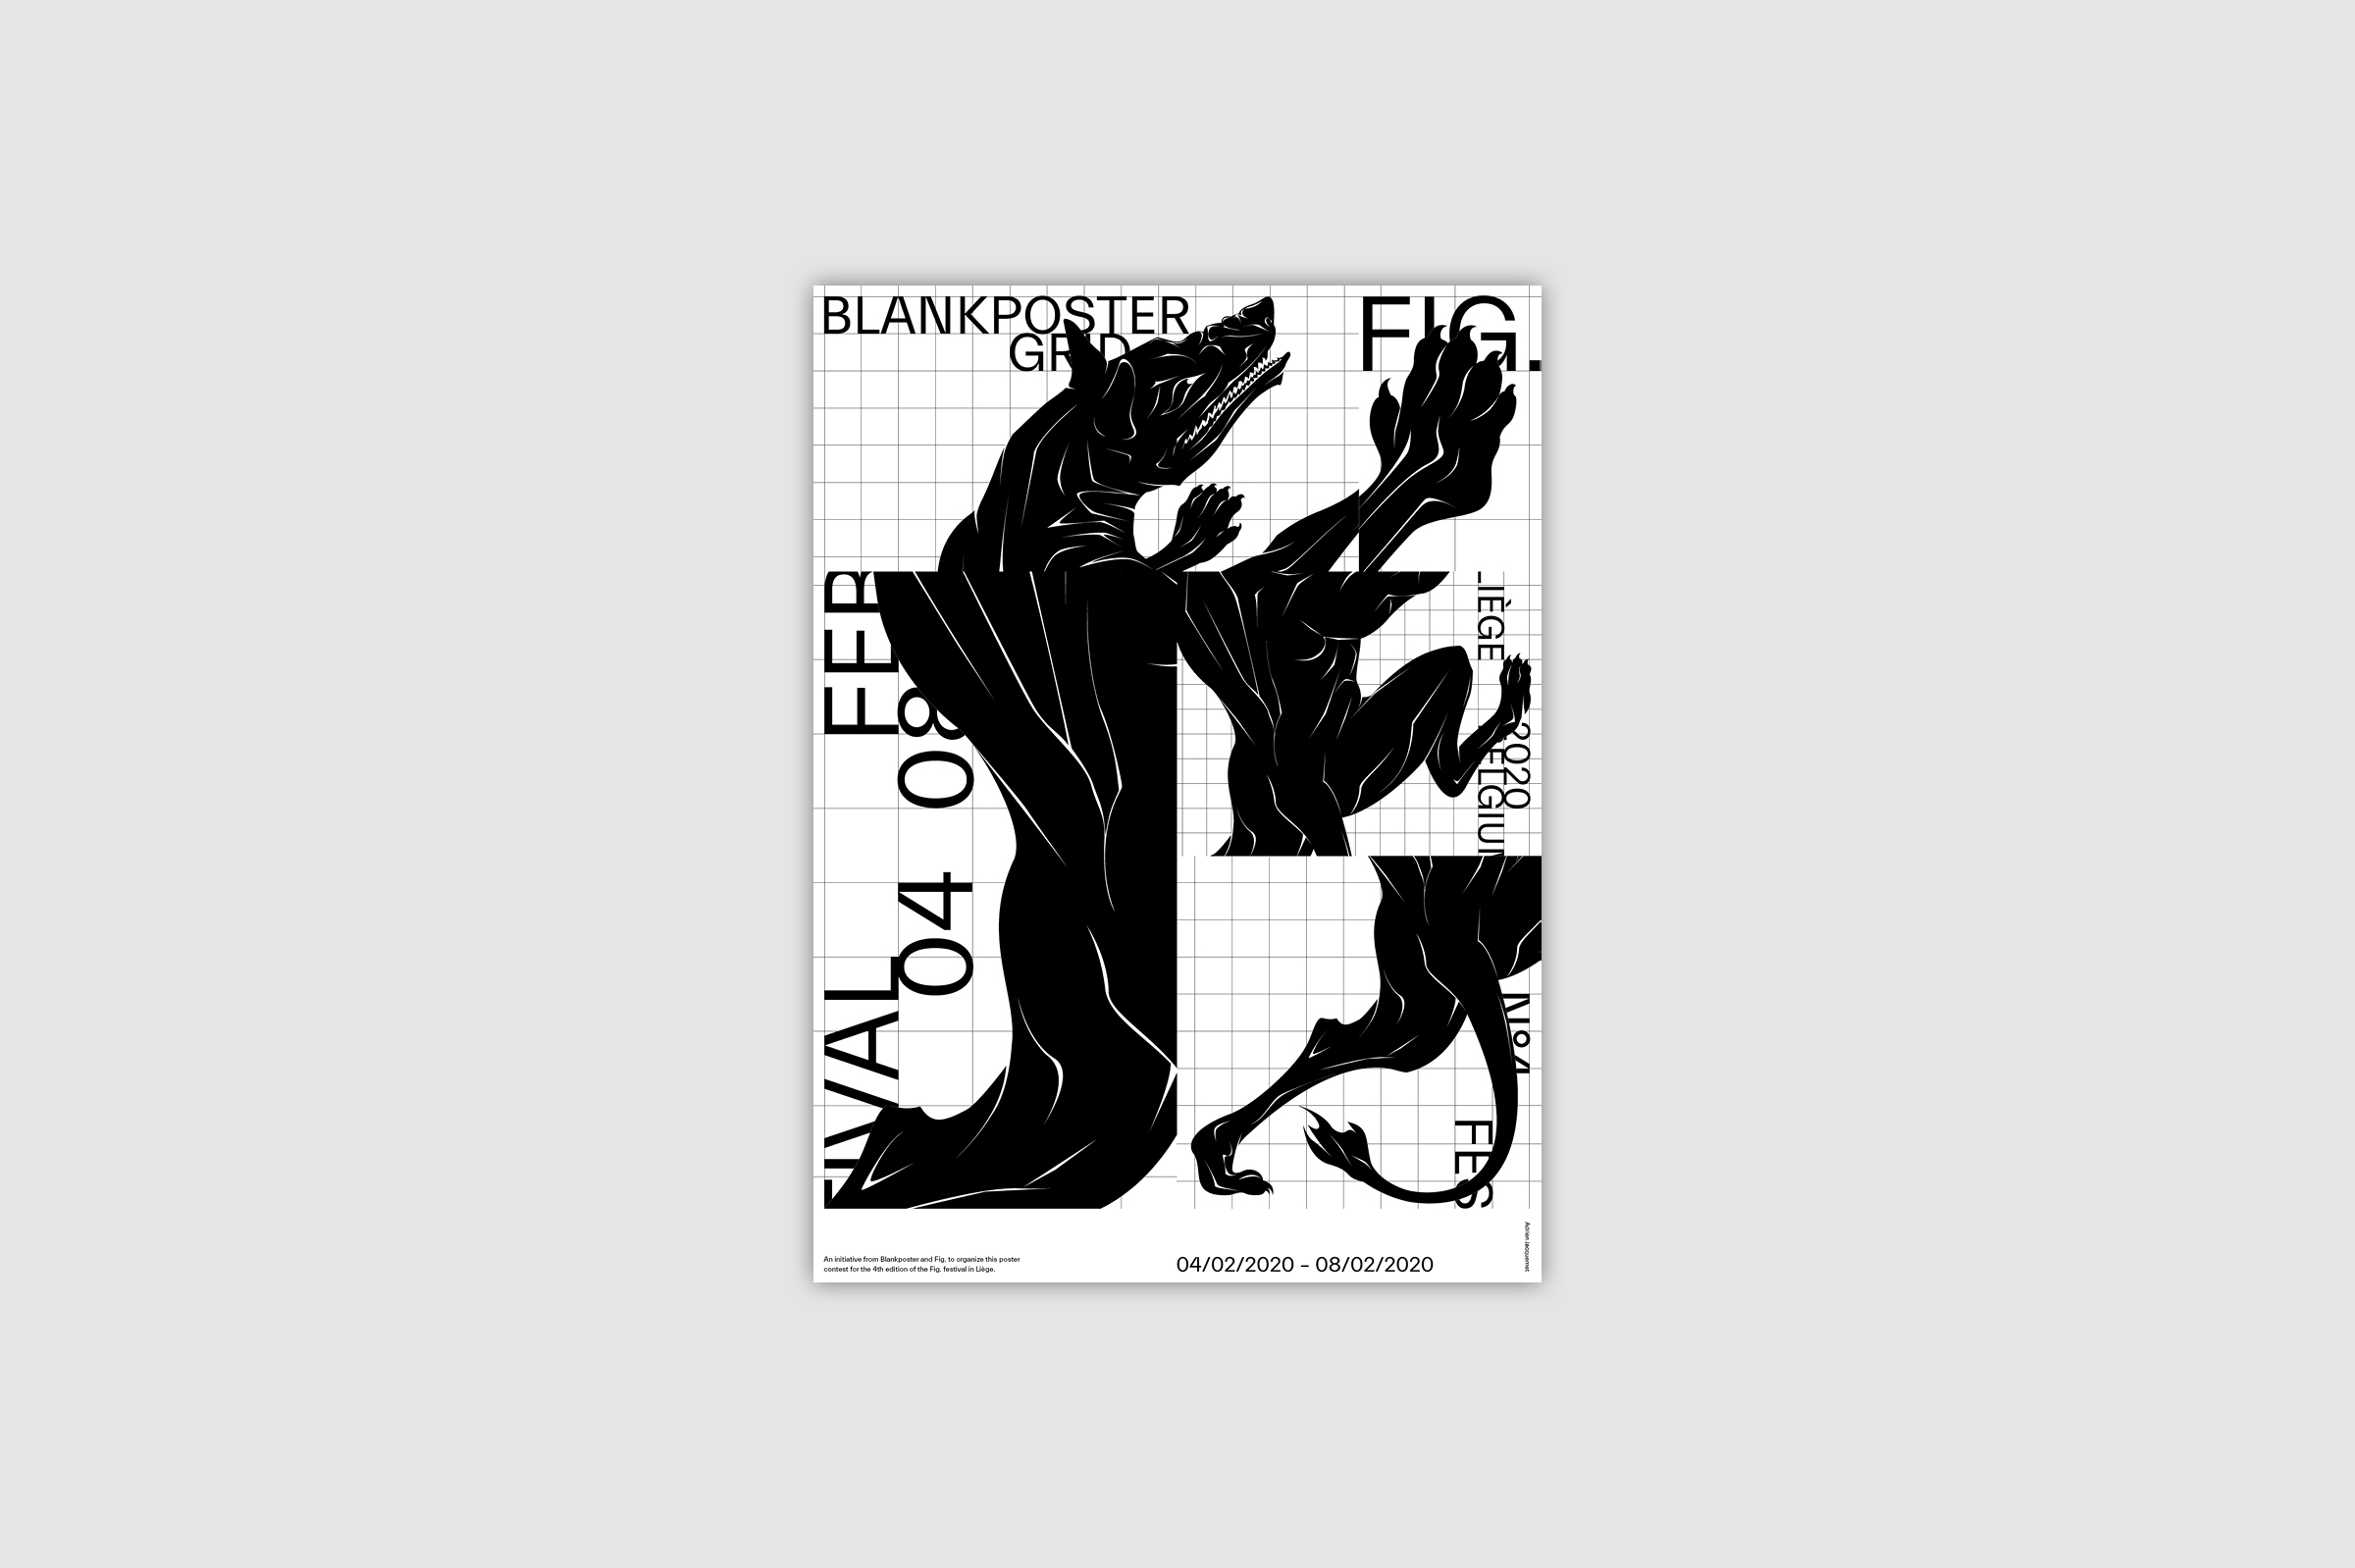 Poster for Blankposter by Adrien Jacquemet